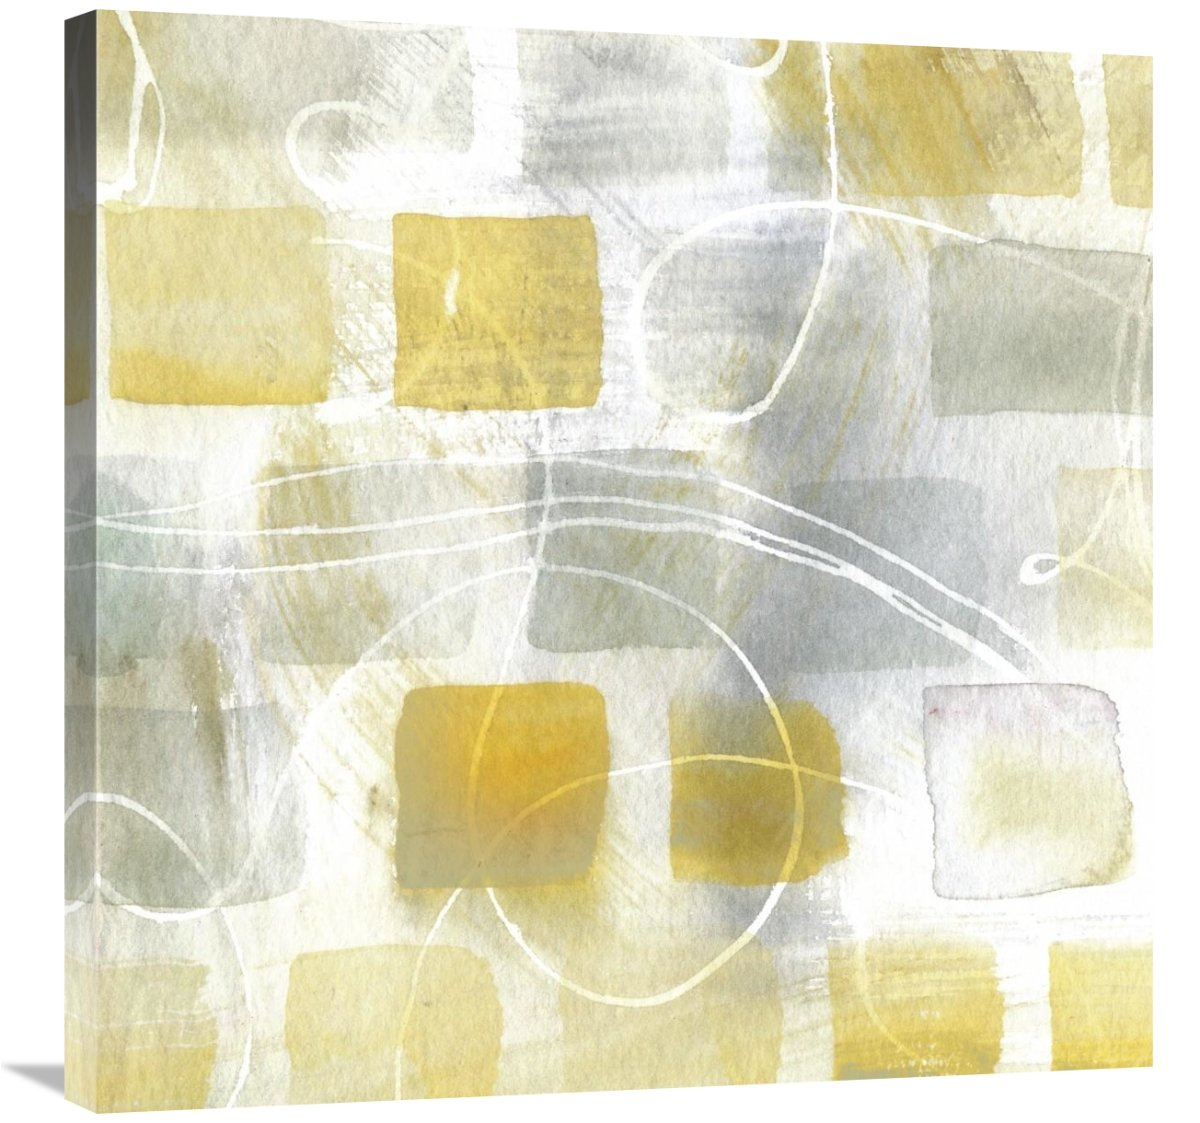 Global Gallery Sue Schlabach Giclee Stretched Canvas Artwork 30 x 30